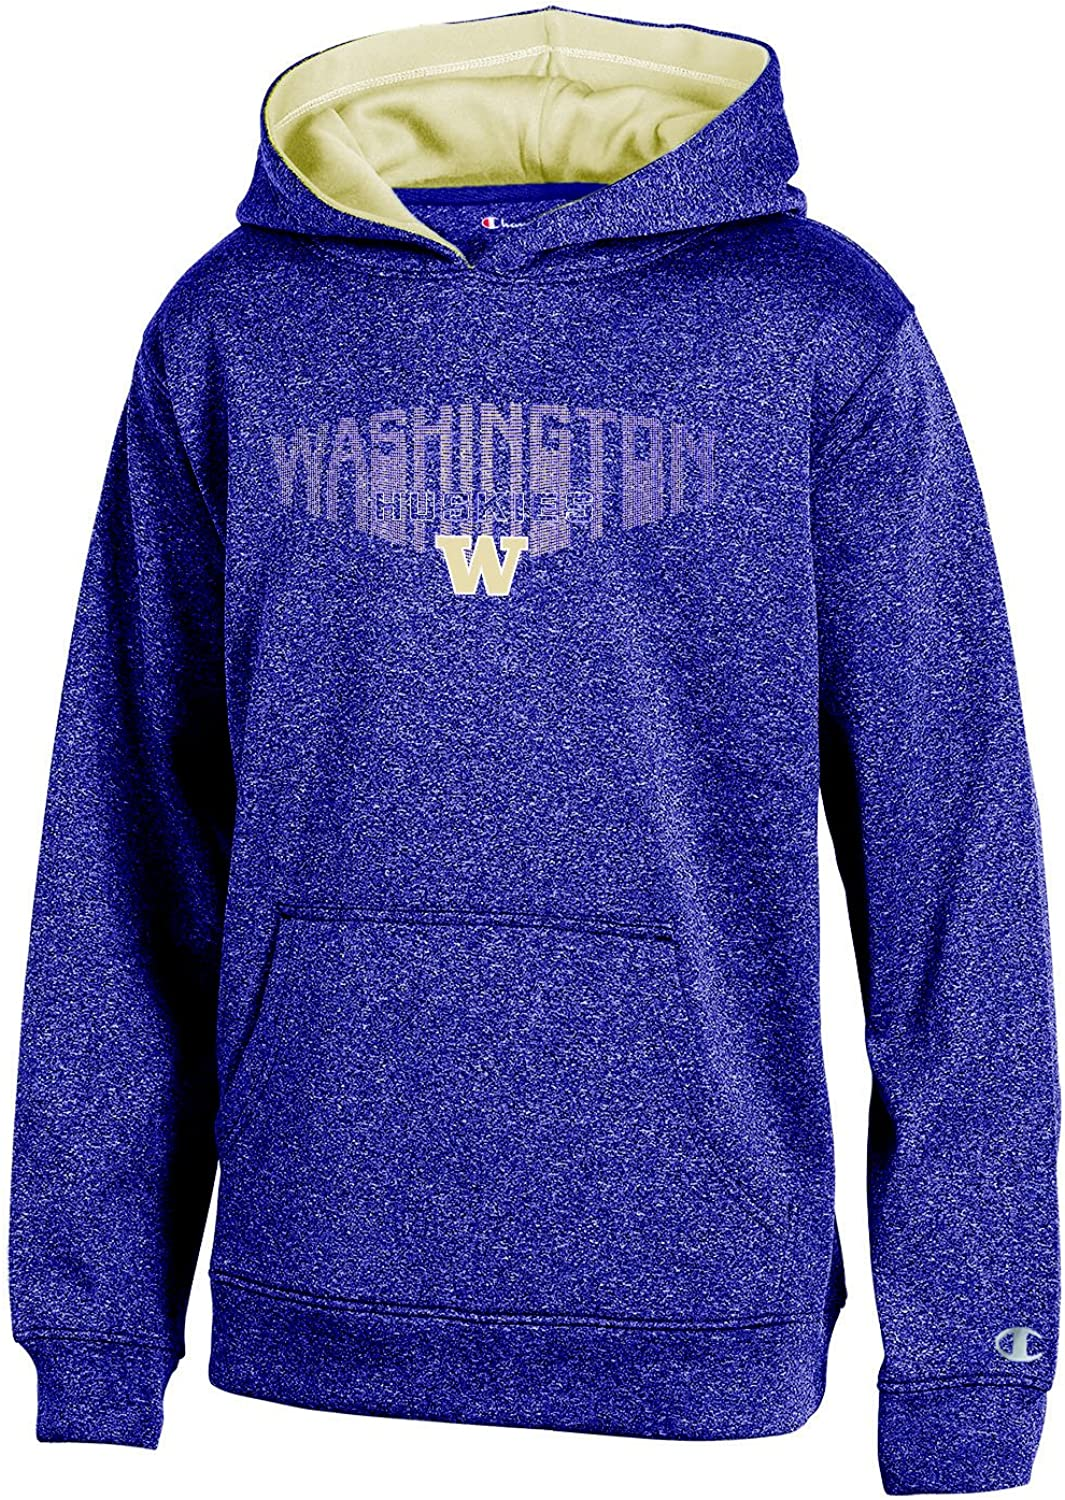 NCAA Champion Youth Boys Take Off Pullover Hoodie